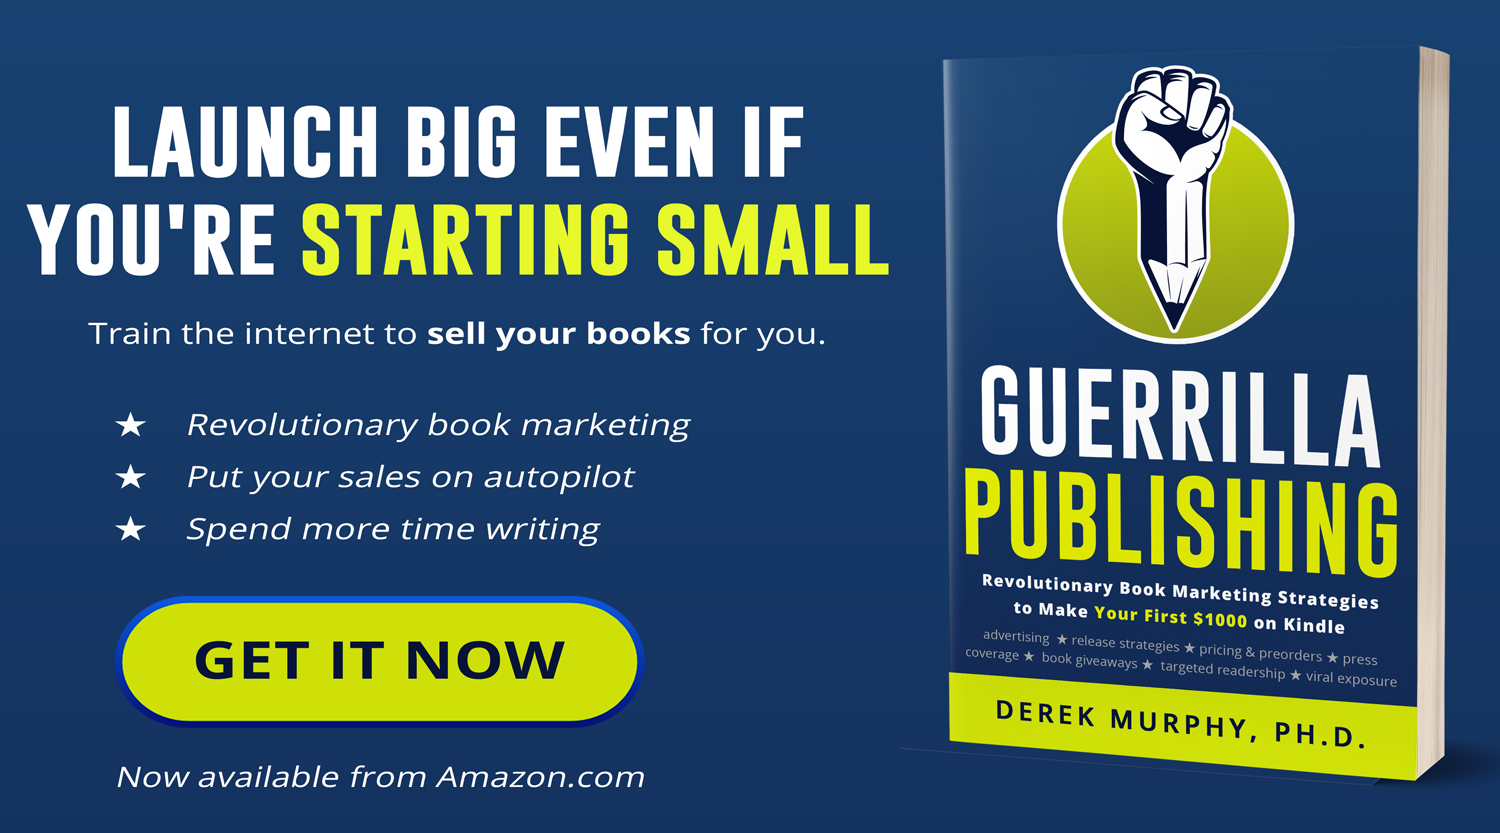 I missed my Kindle preorder window… so Guerrilla Publishing is free